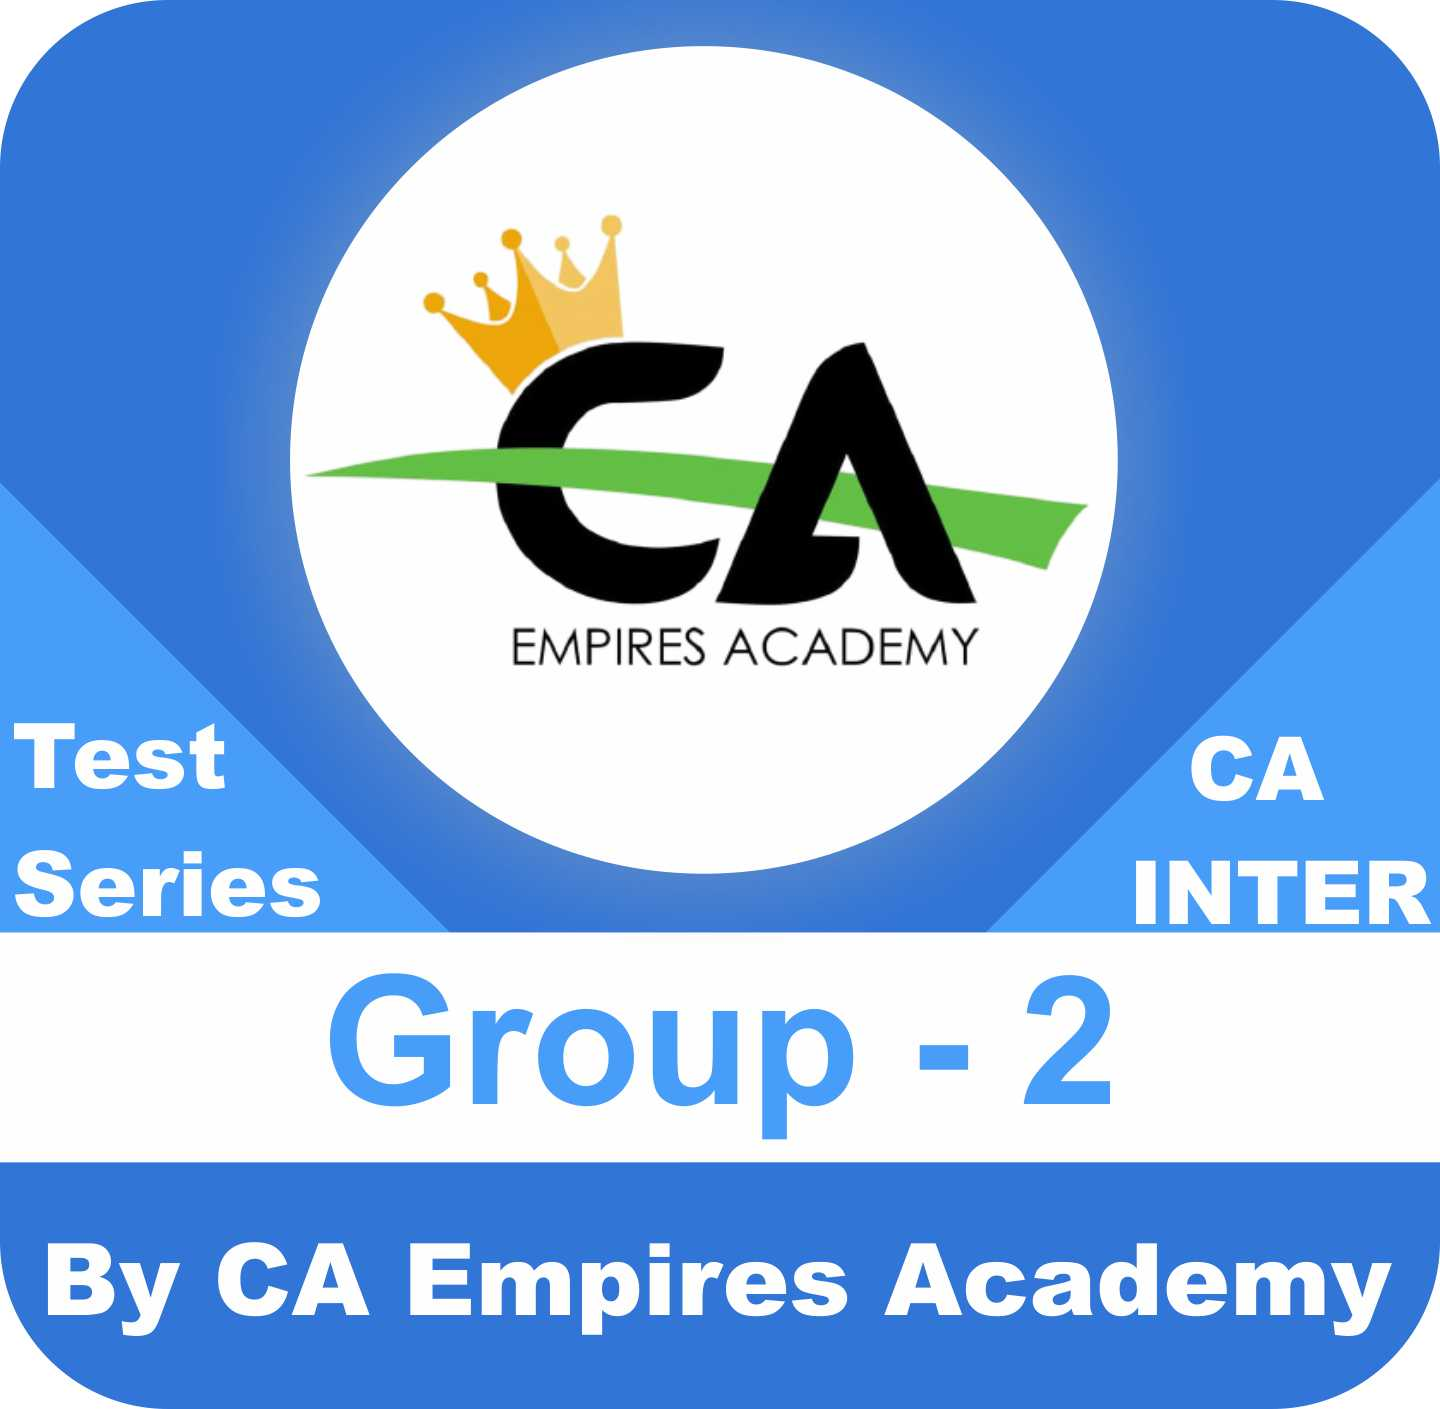 CA Inter Group Two Test Series in Bronze Plan by CA Empires Academy